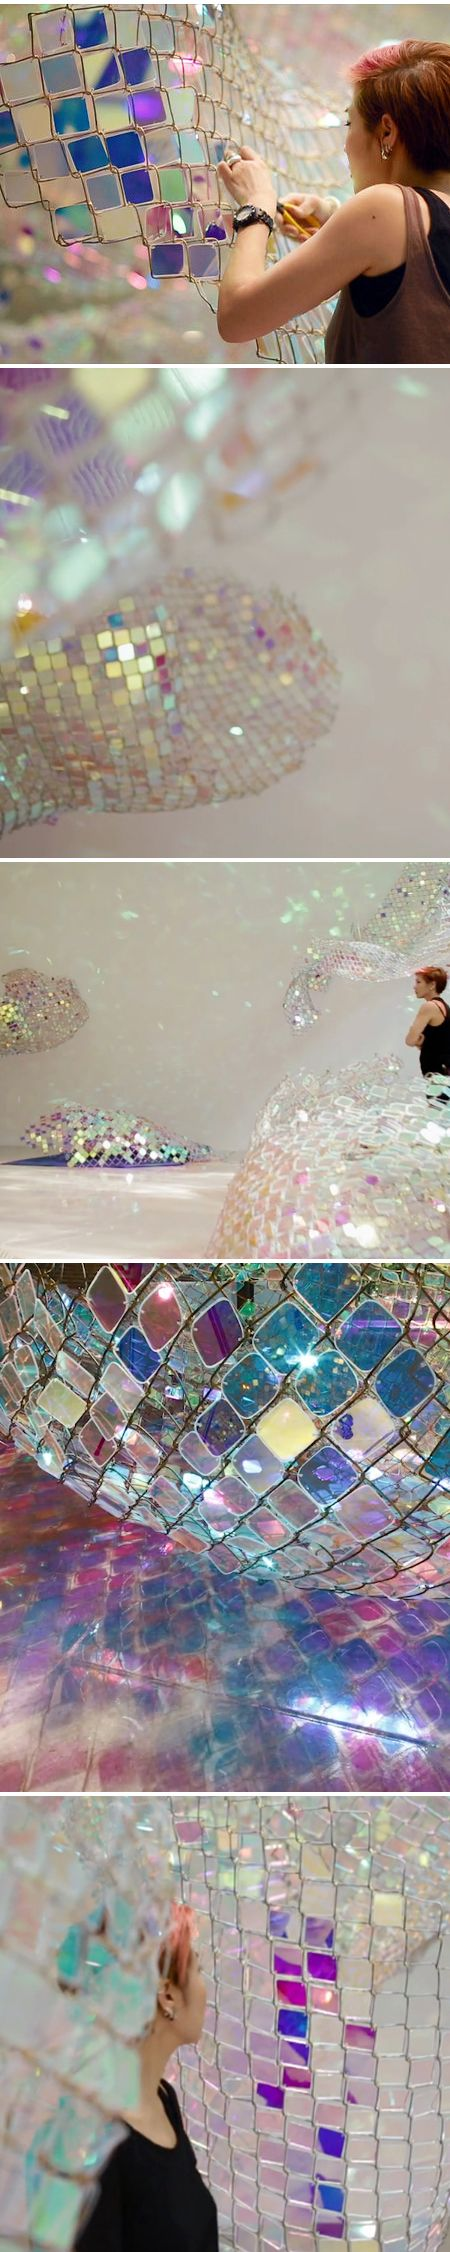 """soo sunny park - installation of """"unwoven light"""" 2013 inspired G.Levin / Touch of Eden 6 http://fqoto.com/ss2014-072-touch-of-eden-6.html"""